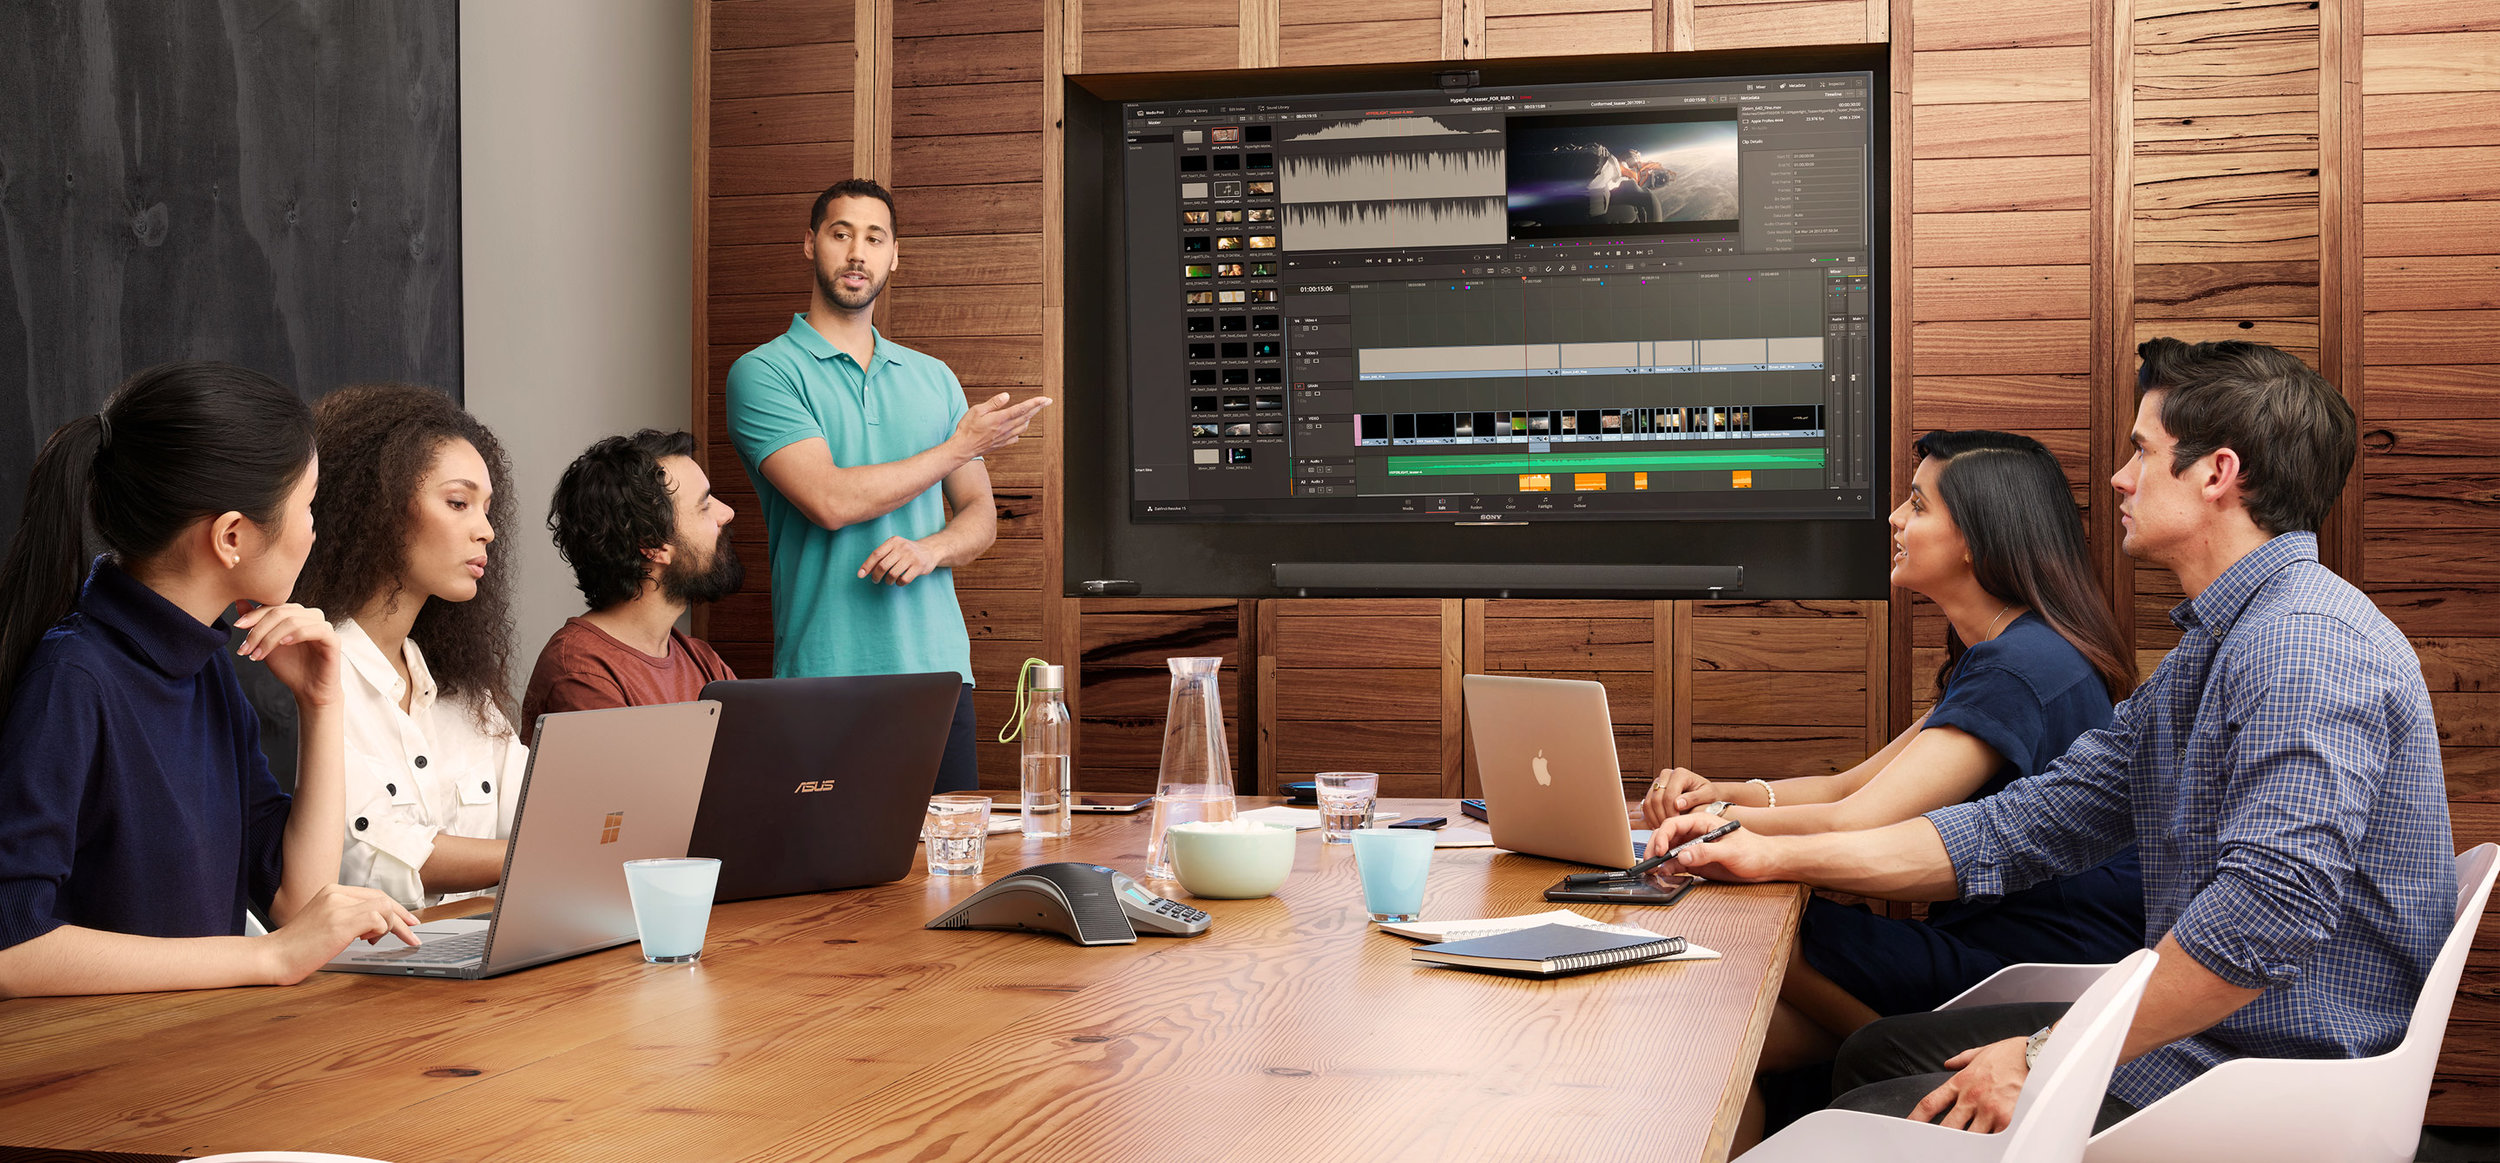 DaVinci Resolve Certification - Click Through for EVENTBRITE CALENDAR